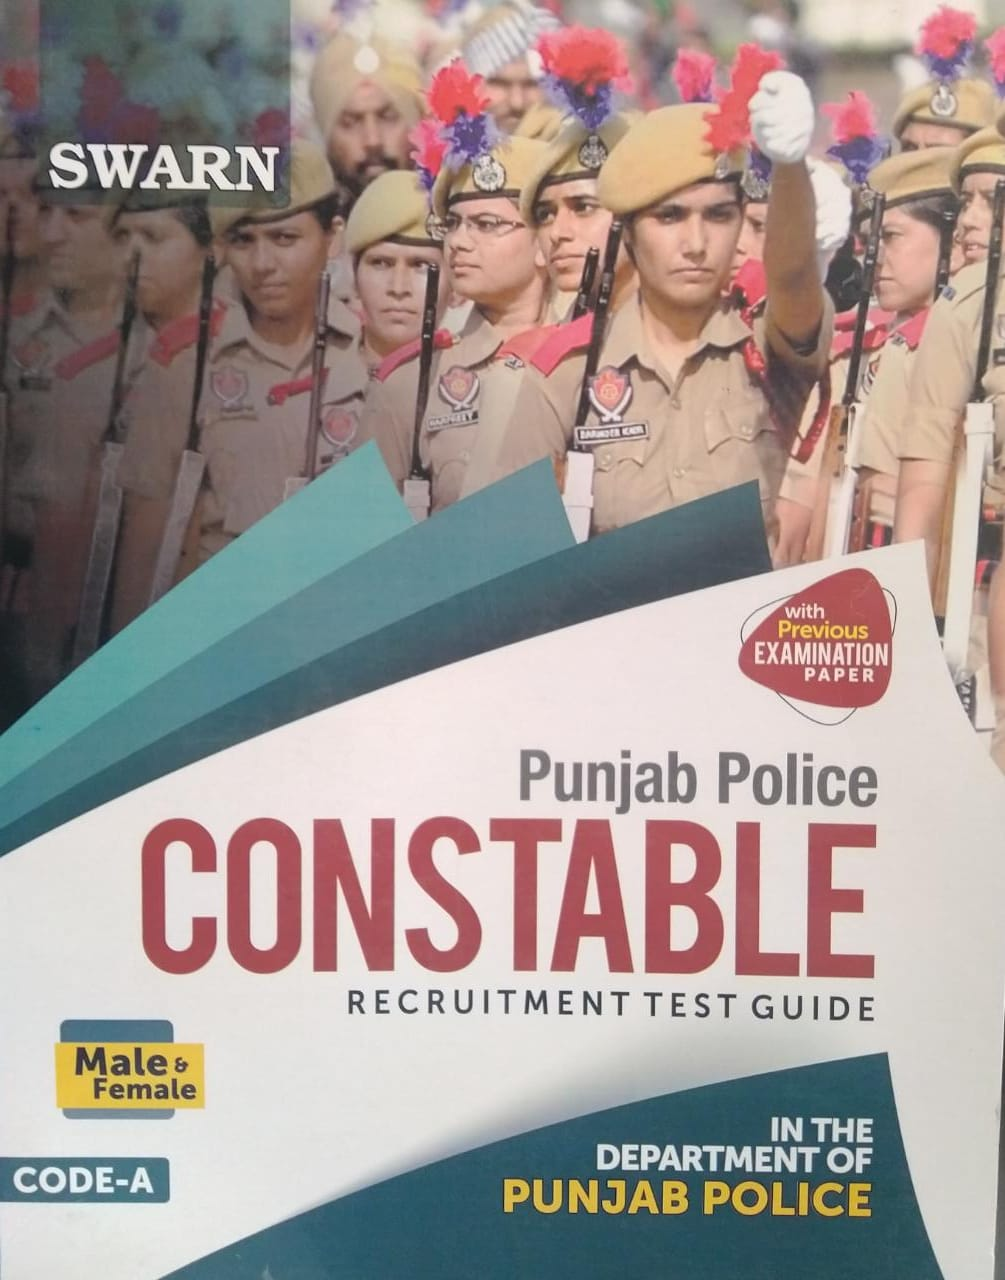 Swarn Punjab Police Constable, Recruitment Test Guide with previous examination paper in the department of punjab police Code-A